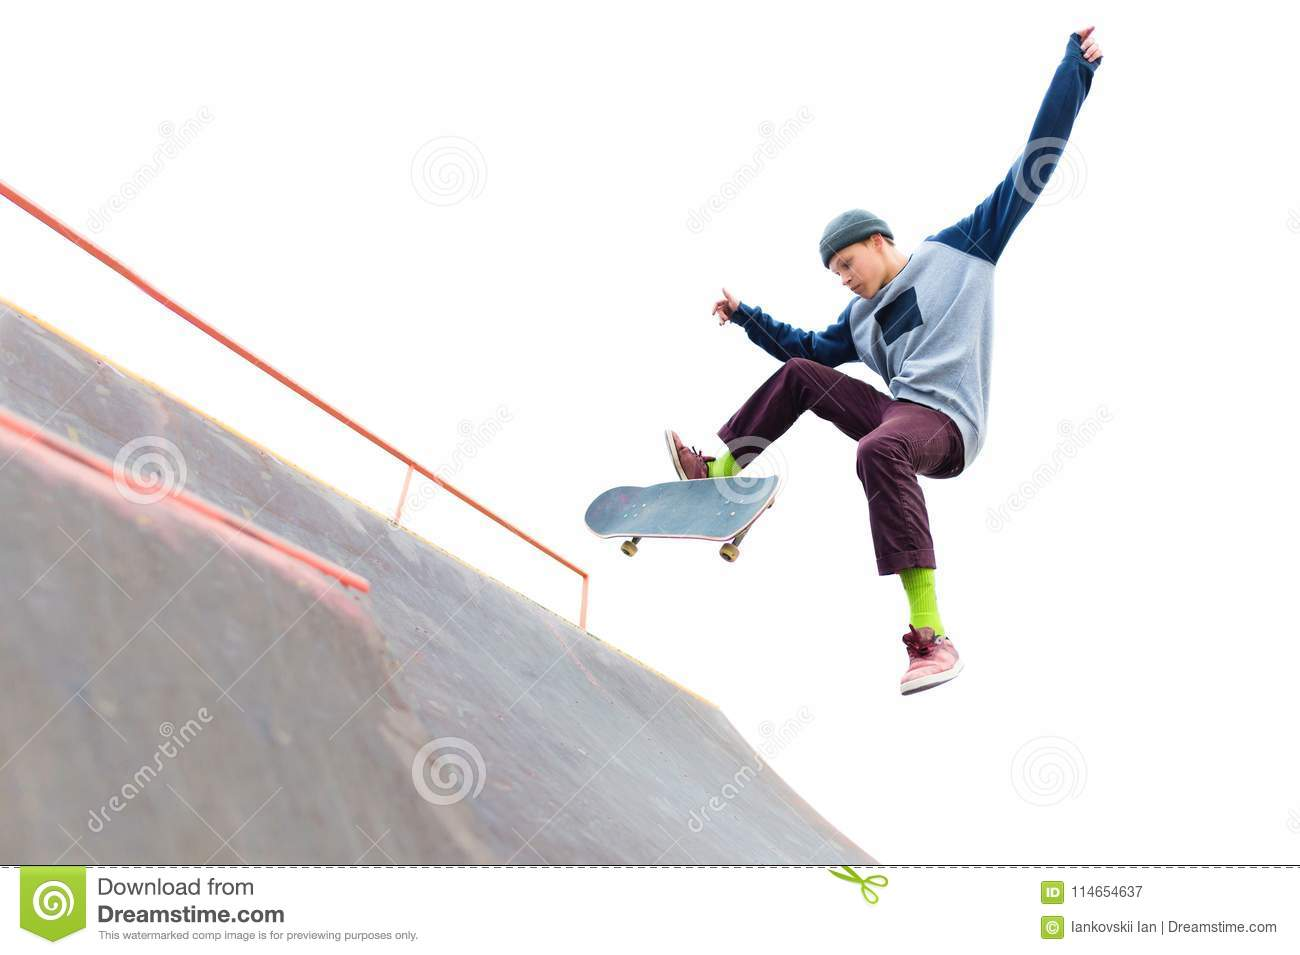 The teenager skateboarder in the cap does a trick with a jump on the ramp in the skatepark. skater and ramp on